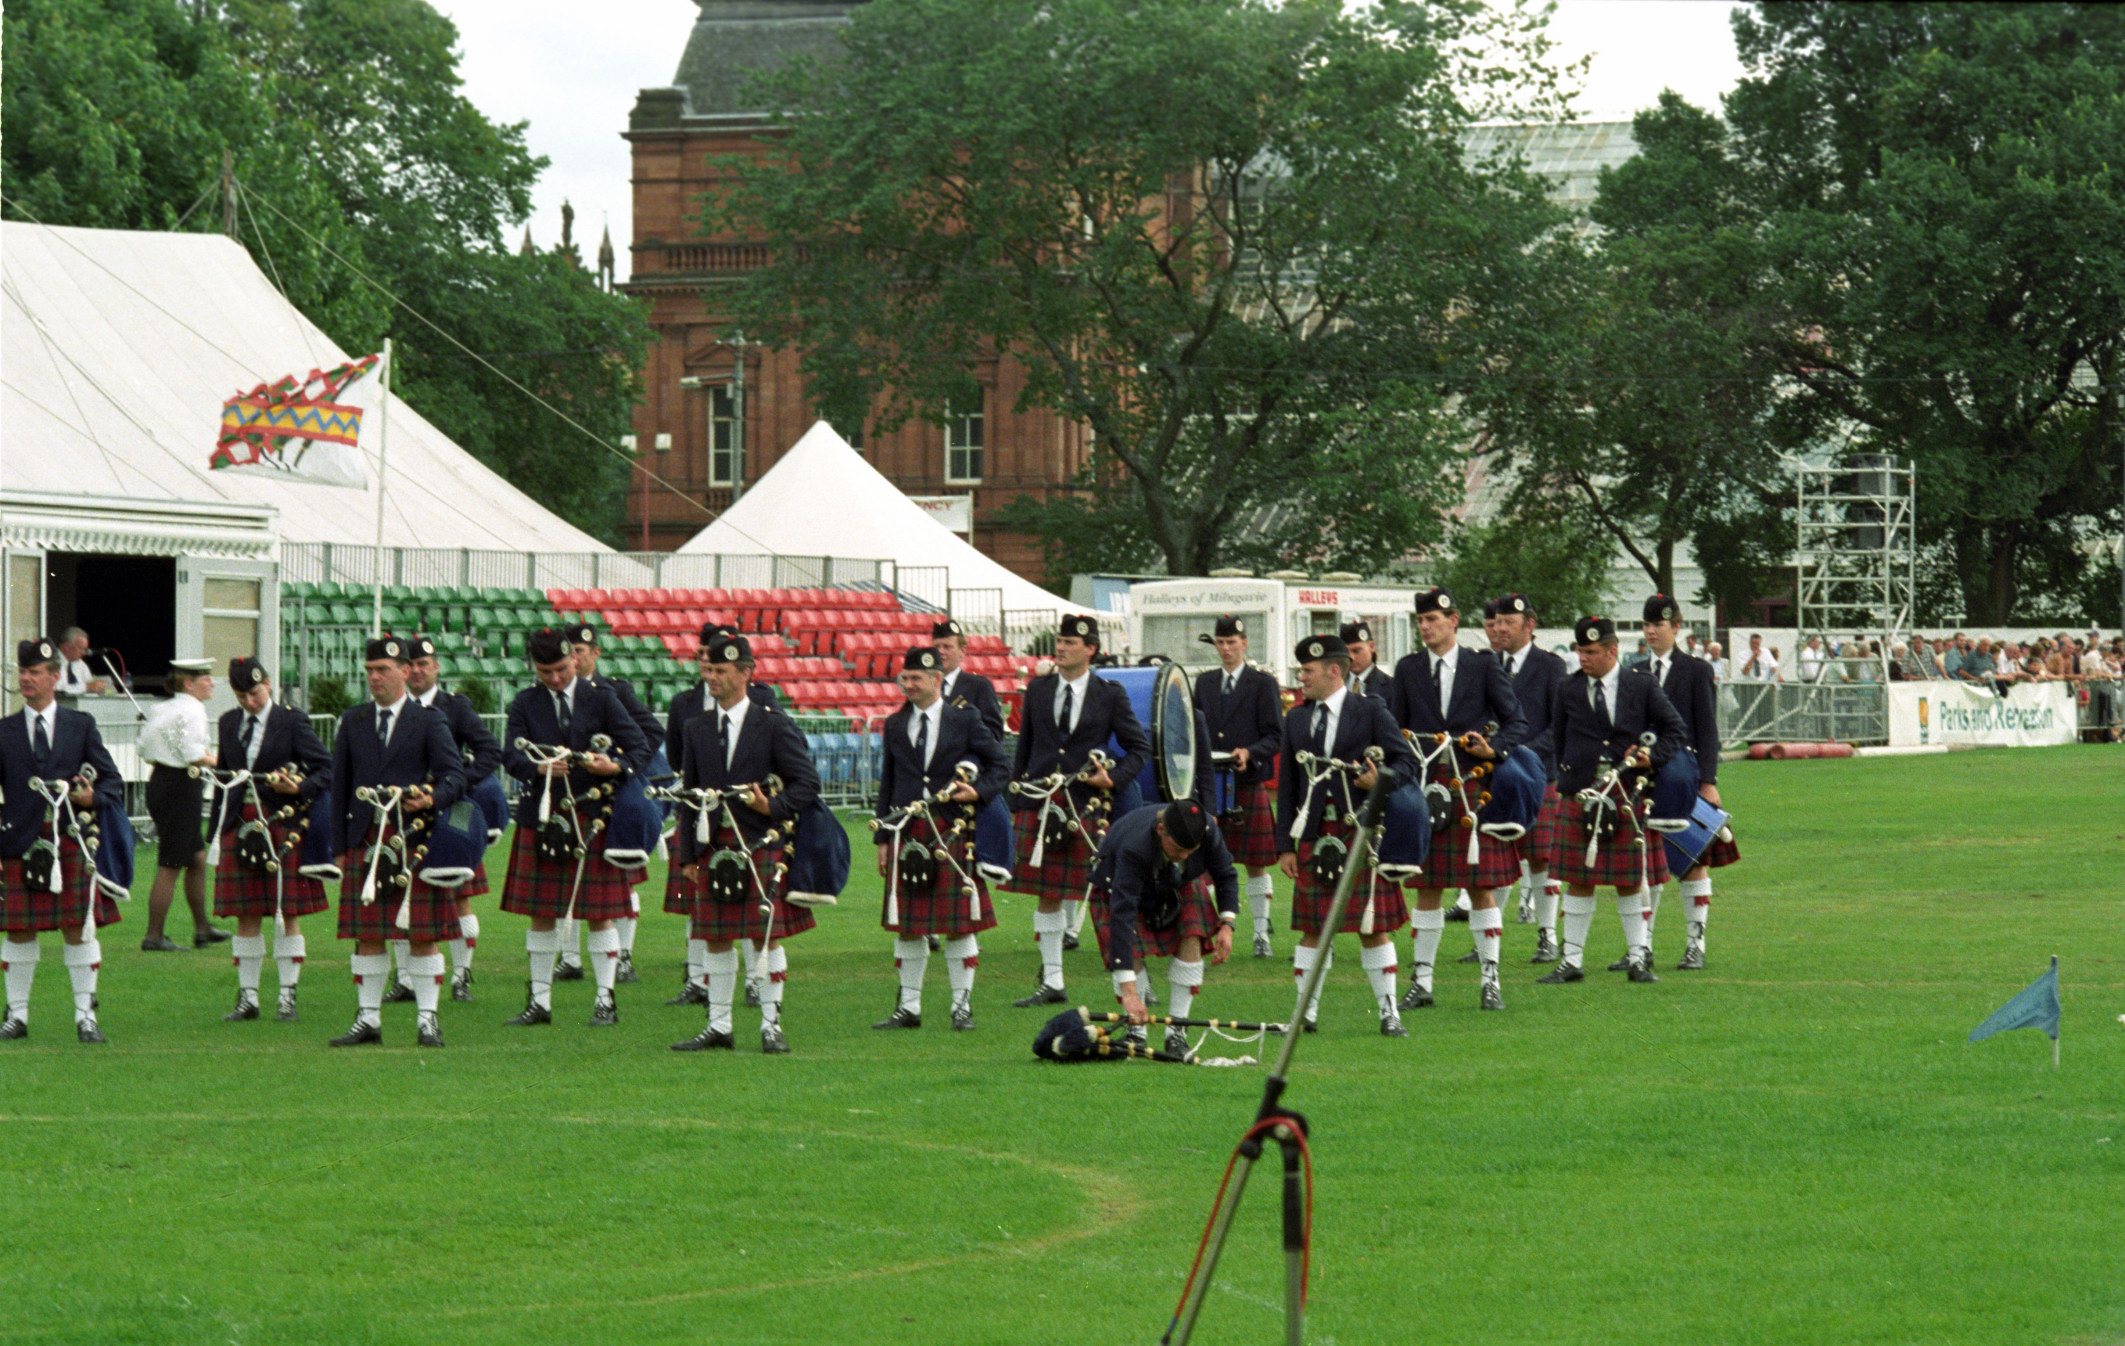 Glasgow Green 1997: Vale of Atholl Pipe Band getting ready to compete